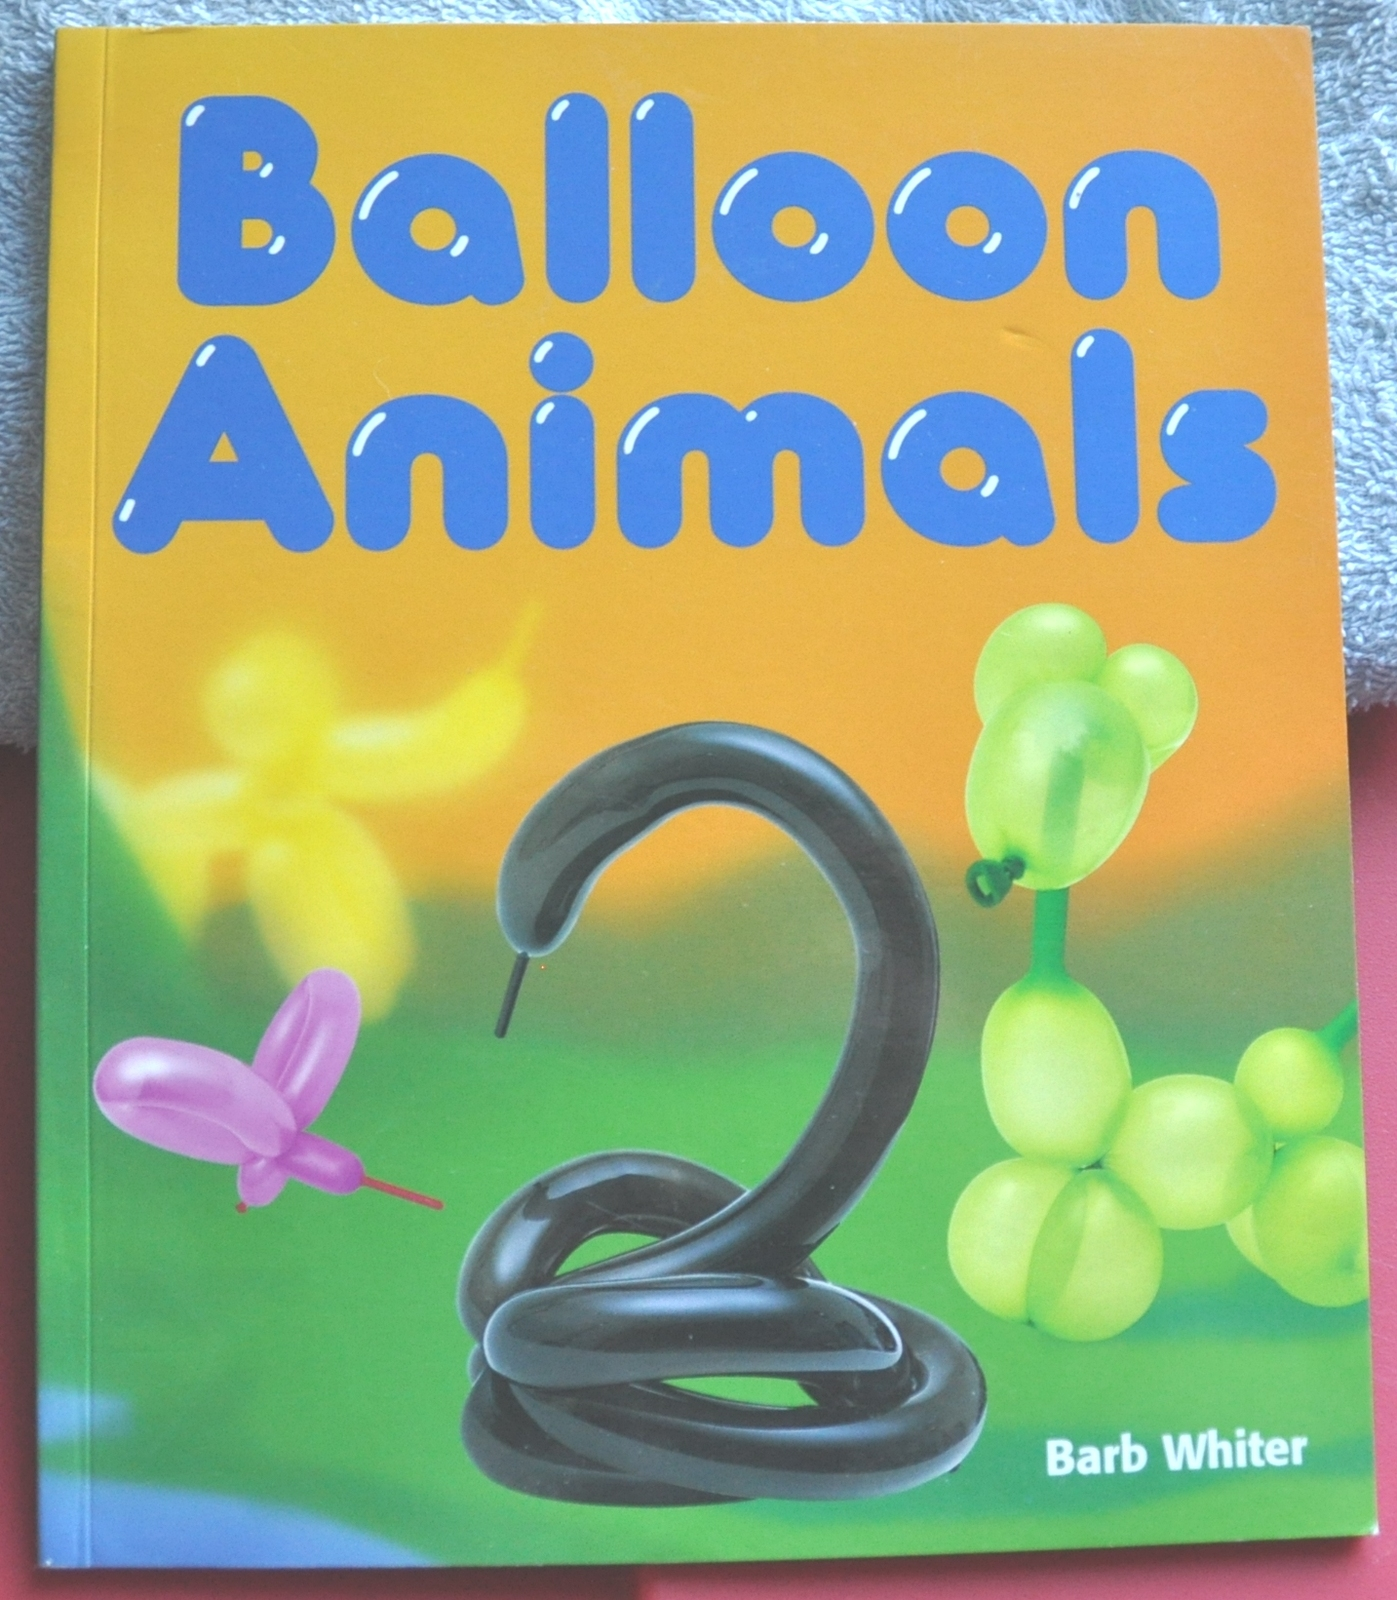 ( Step By Step Instructions On Making 15 Animal Balloons